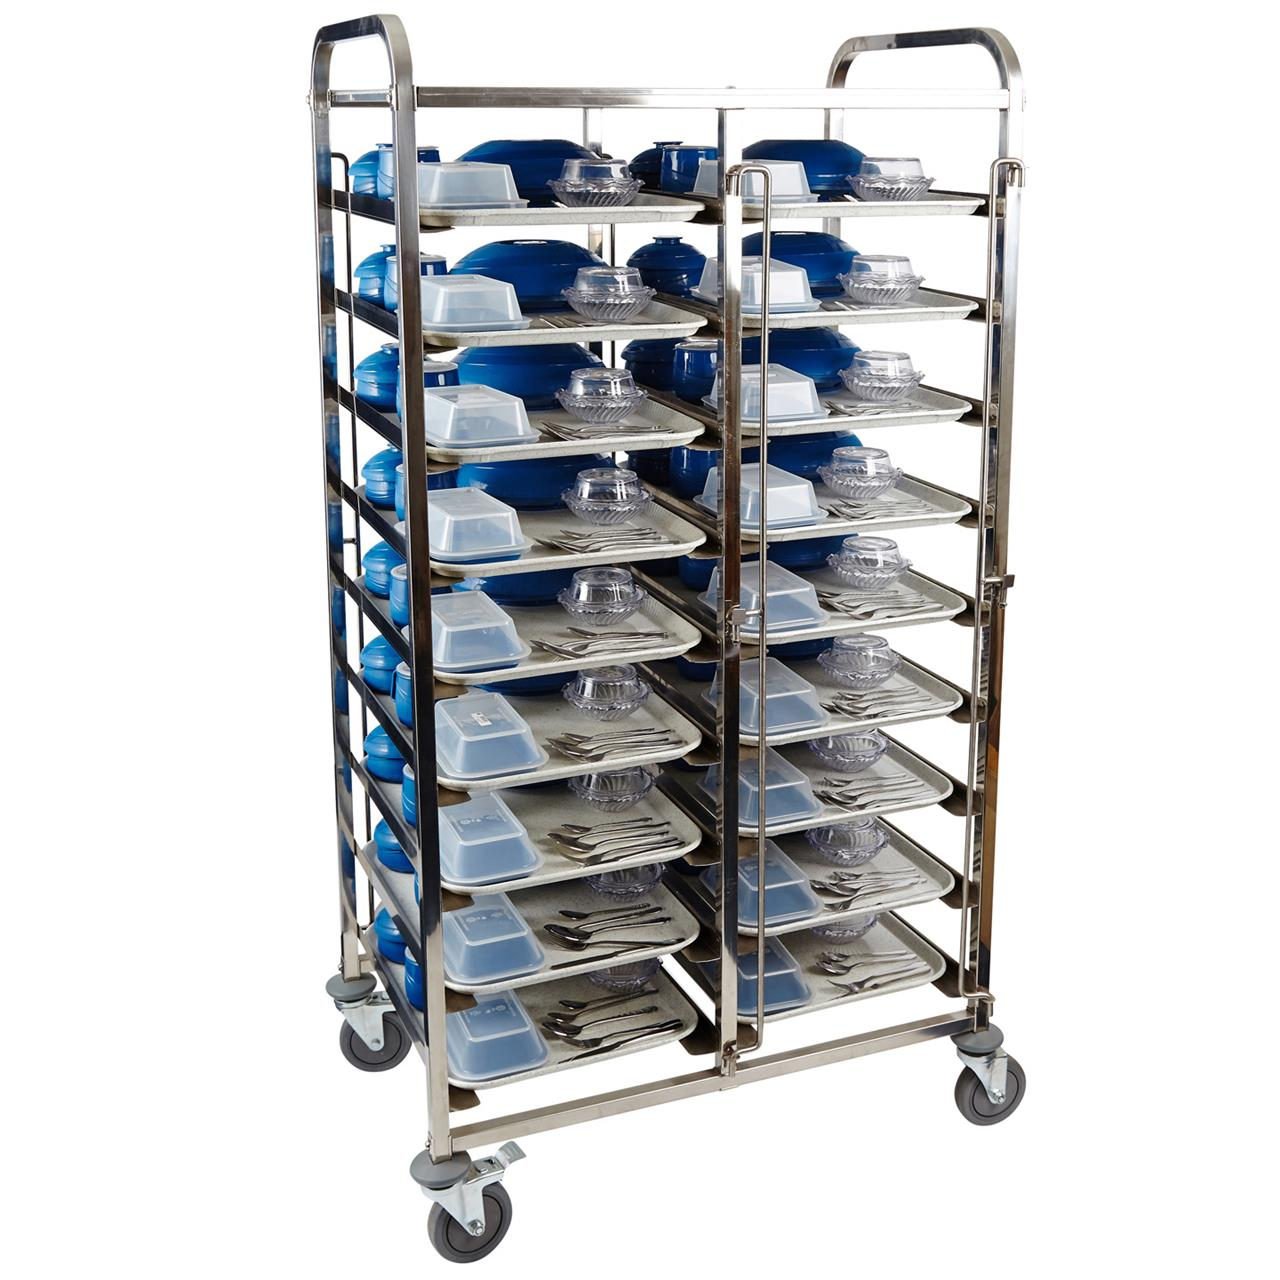 Healthcare Meal Delivery Trolley 9 Tier